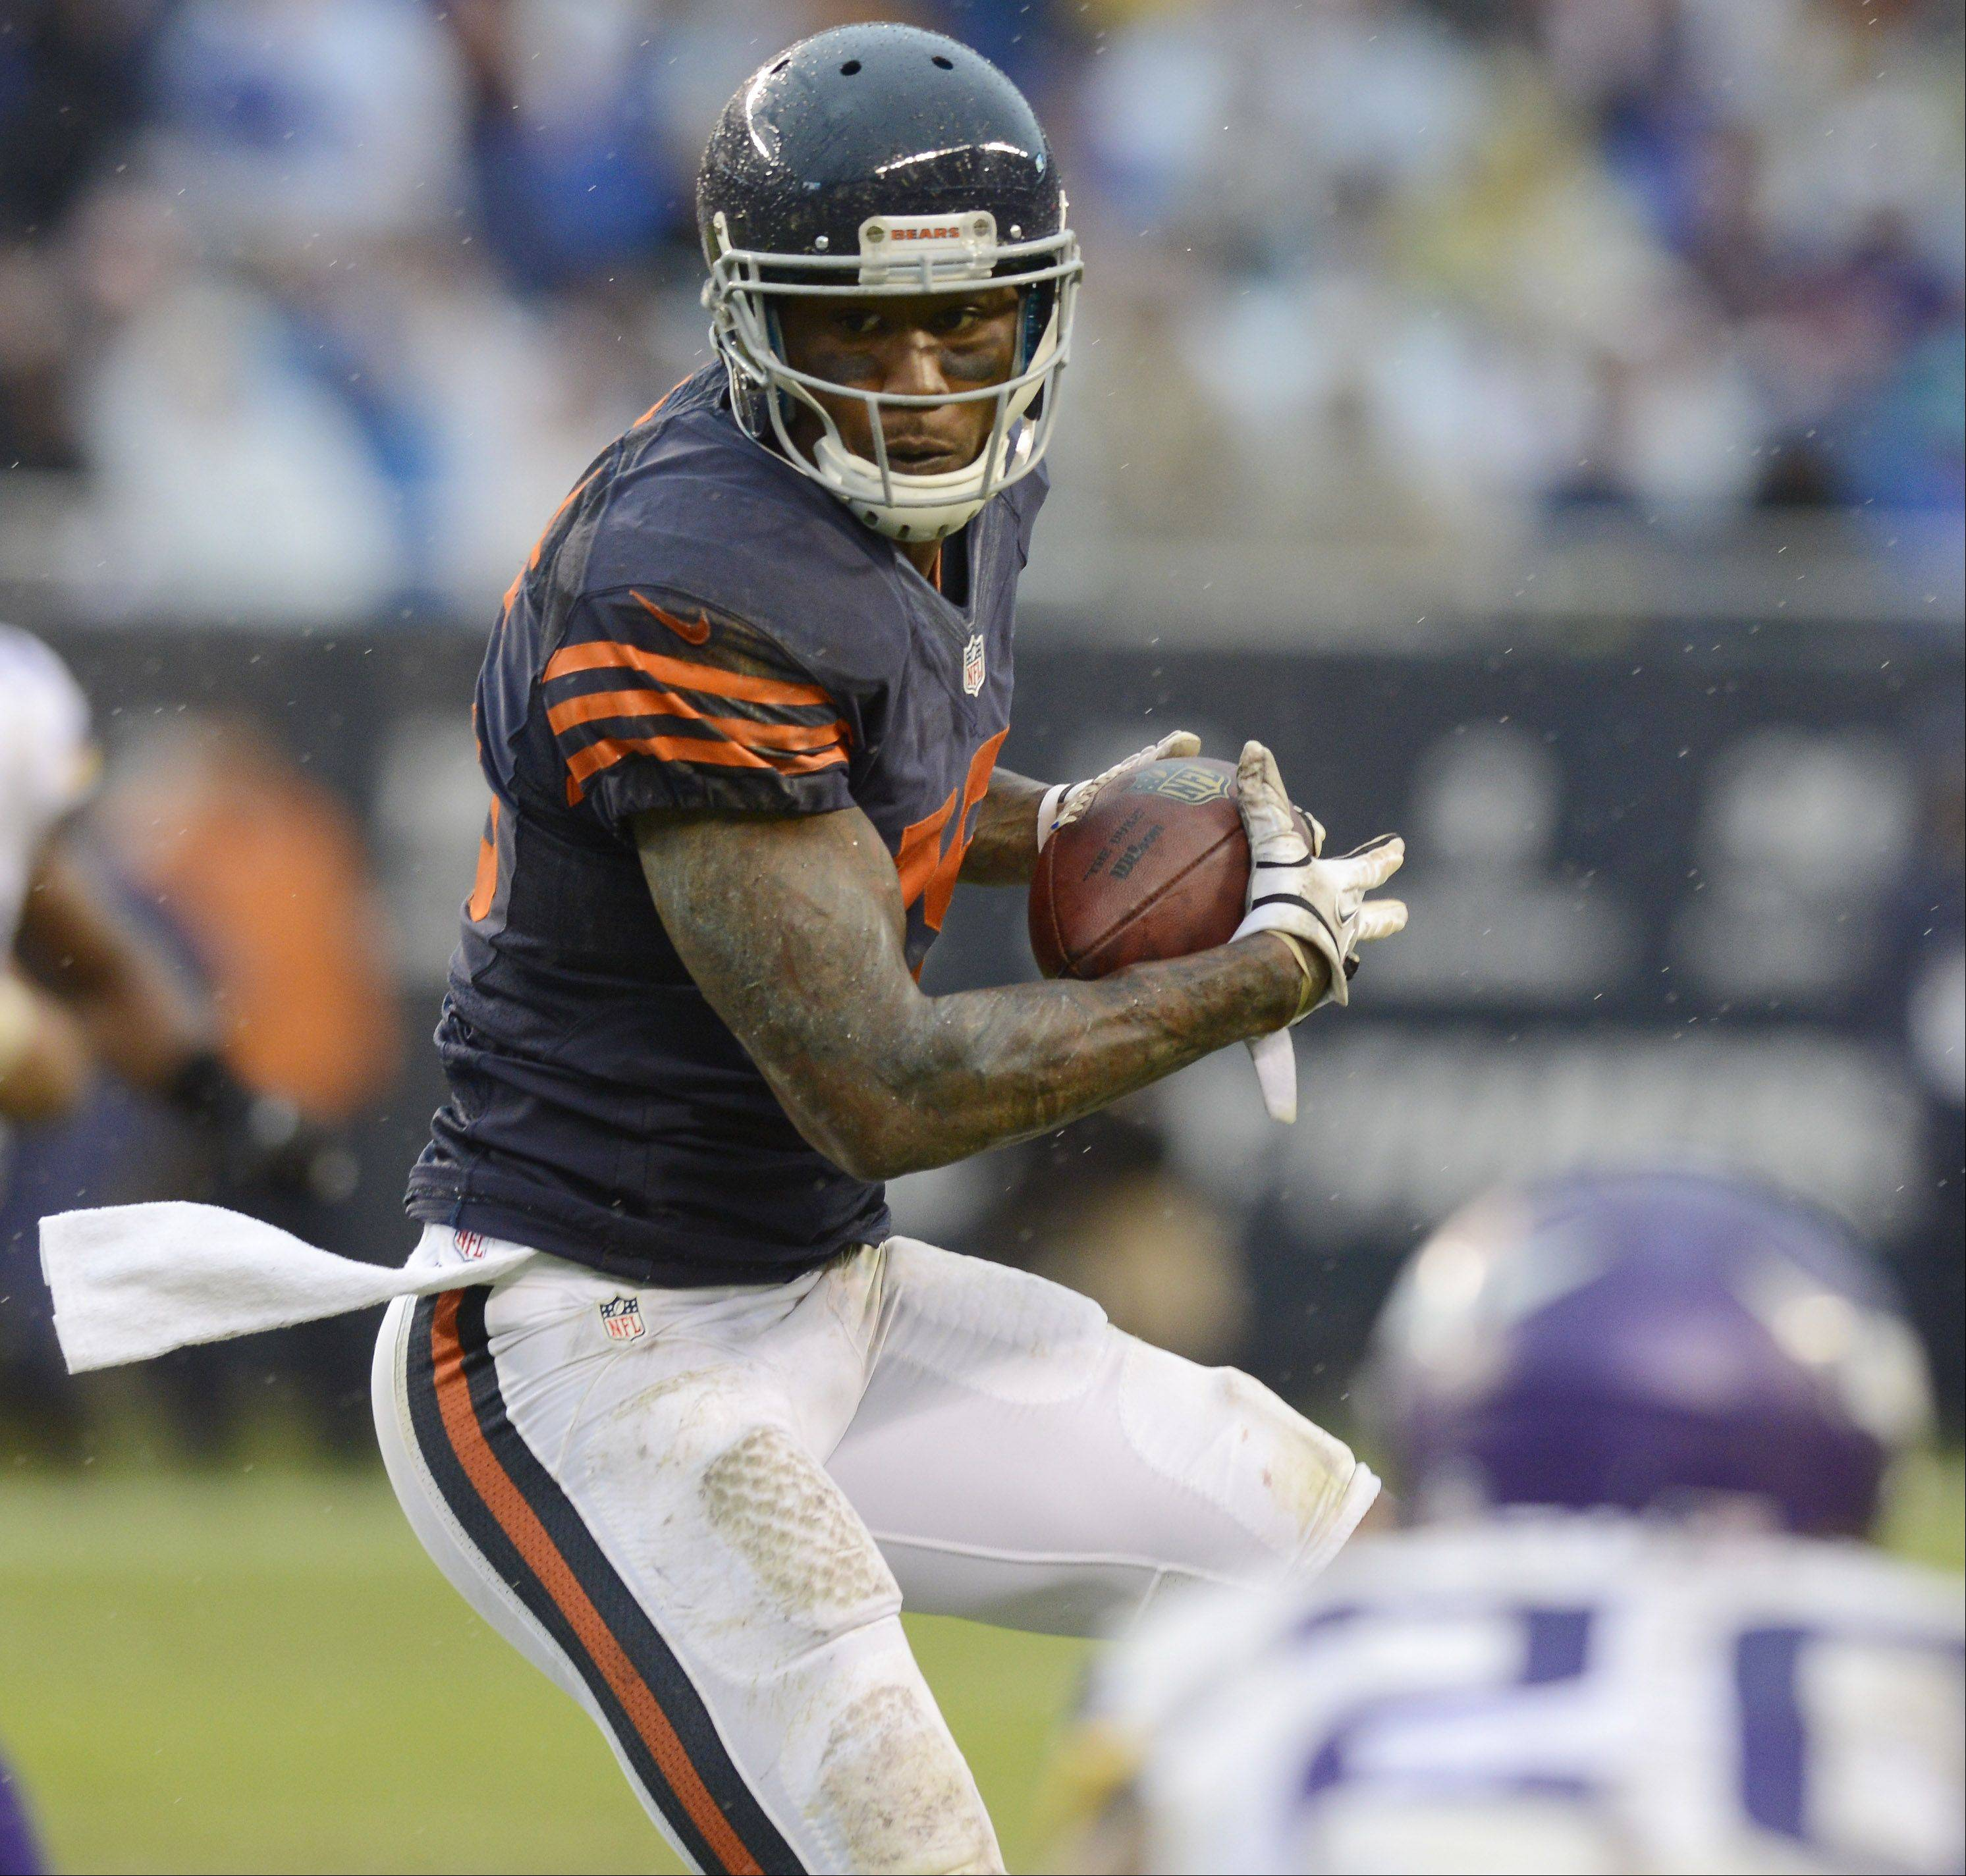 The Bears� Brandon Marshall says he�s just like any other wide receiver who wants to catch the ball.